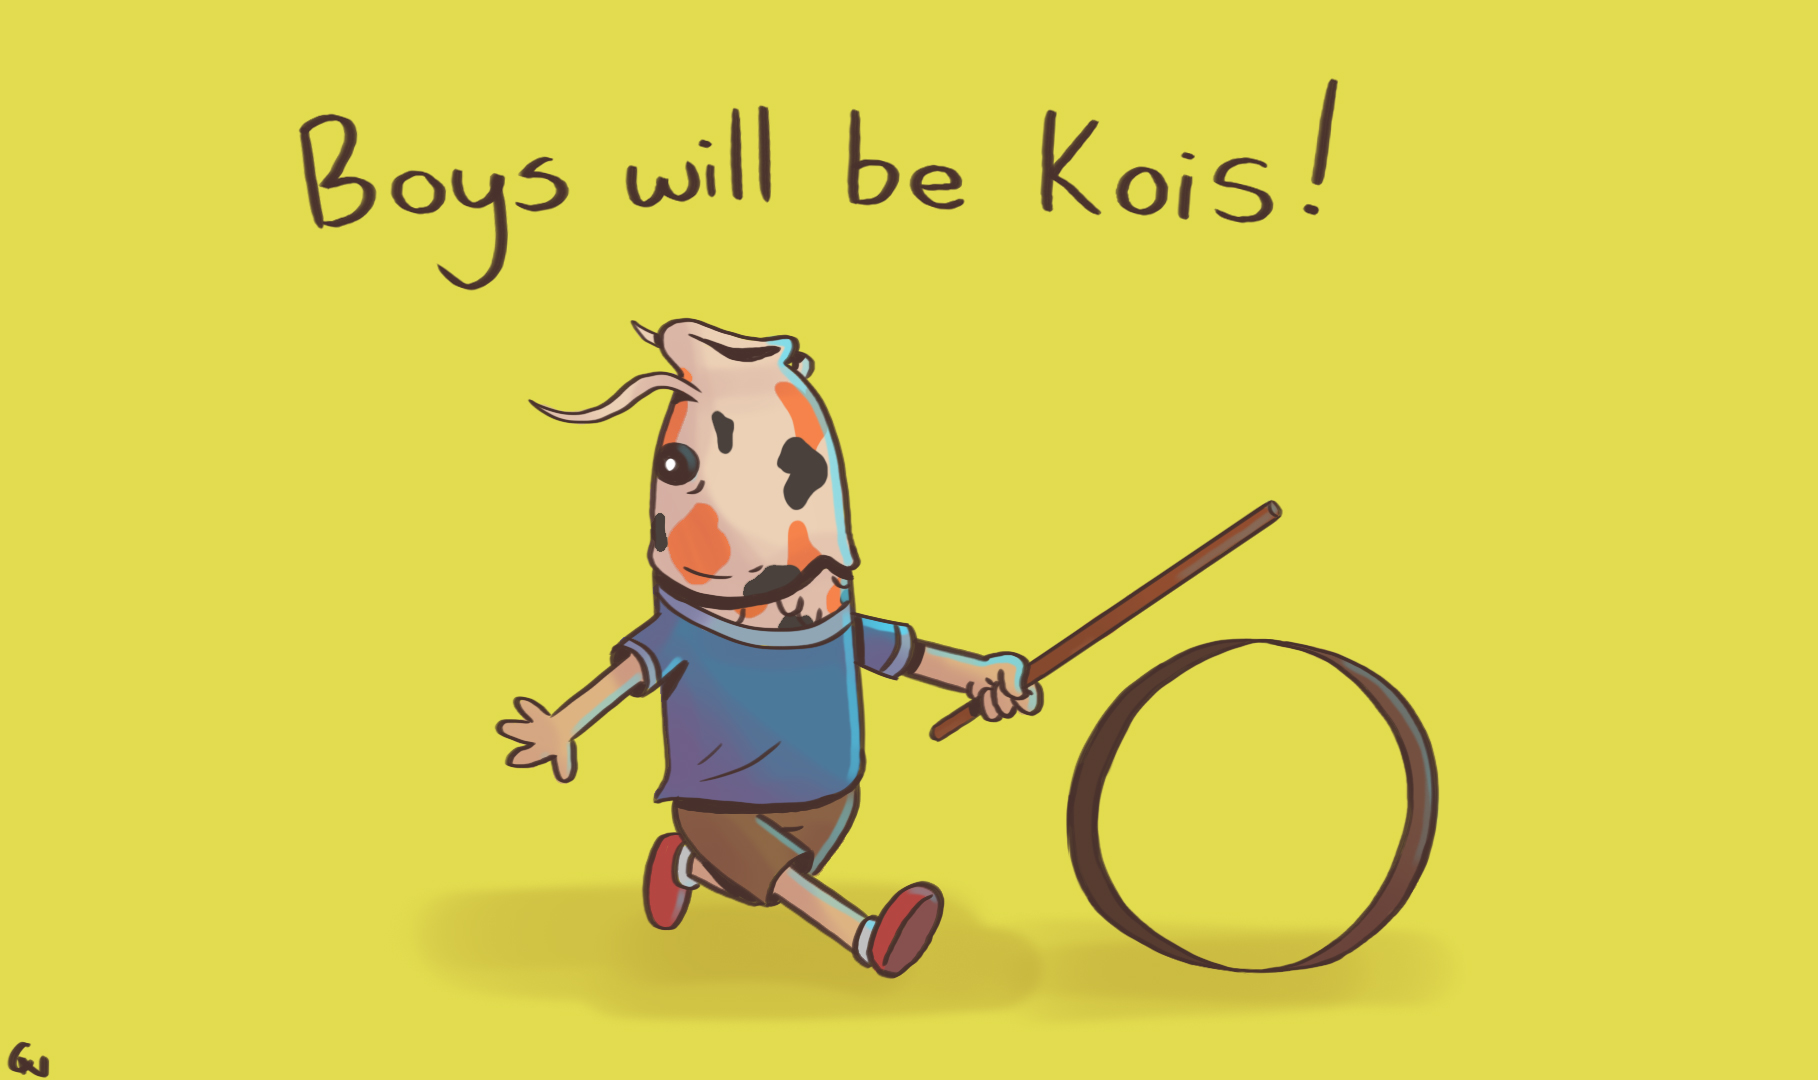 Boys will be kois